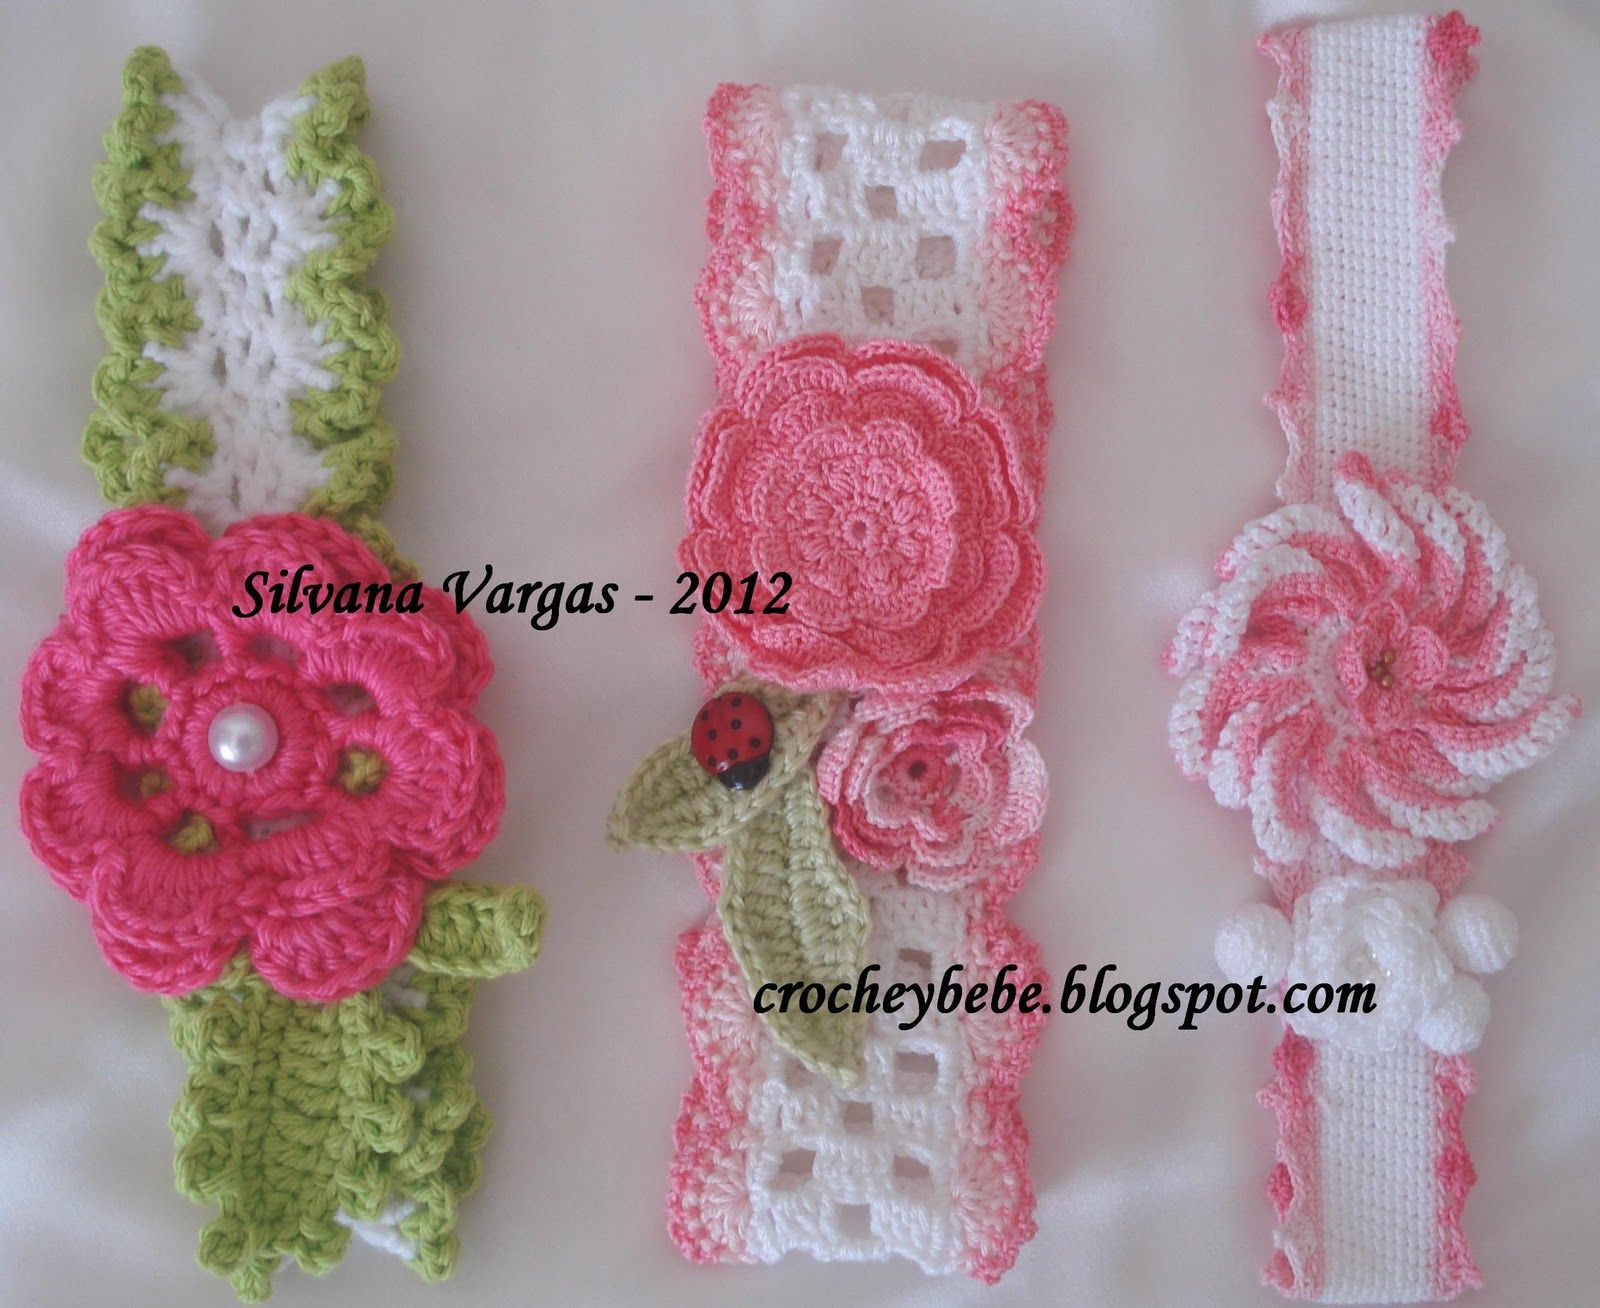 Crochet Baby - Headbands | Crochet for Baby | Pinterest | Crochet ...